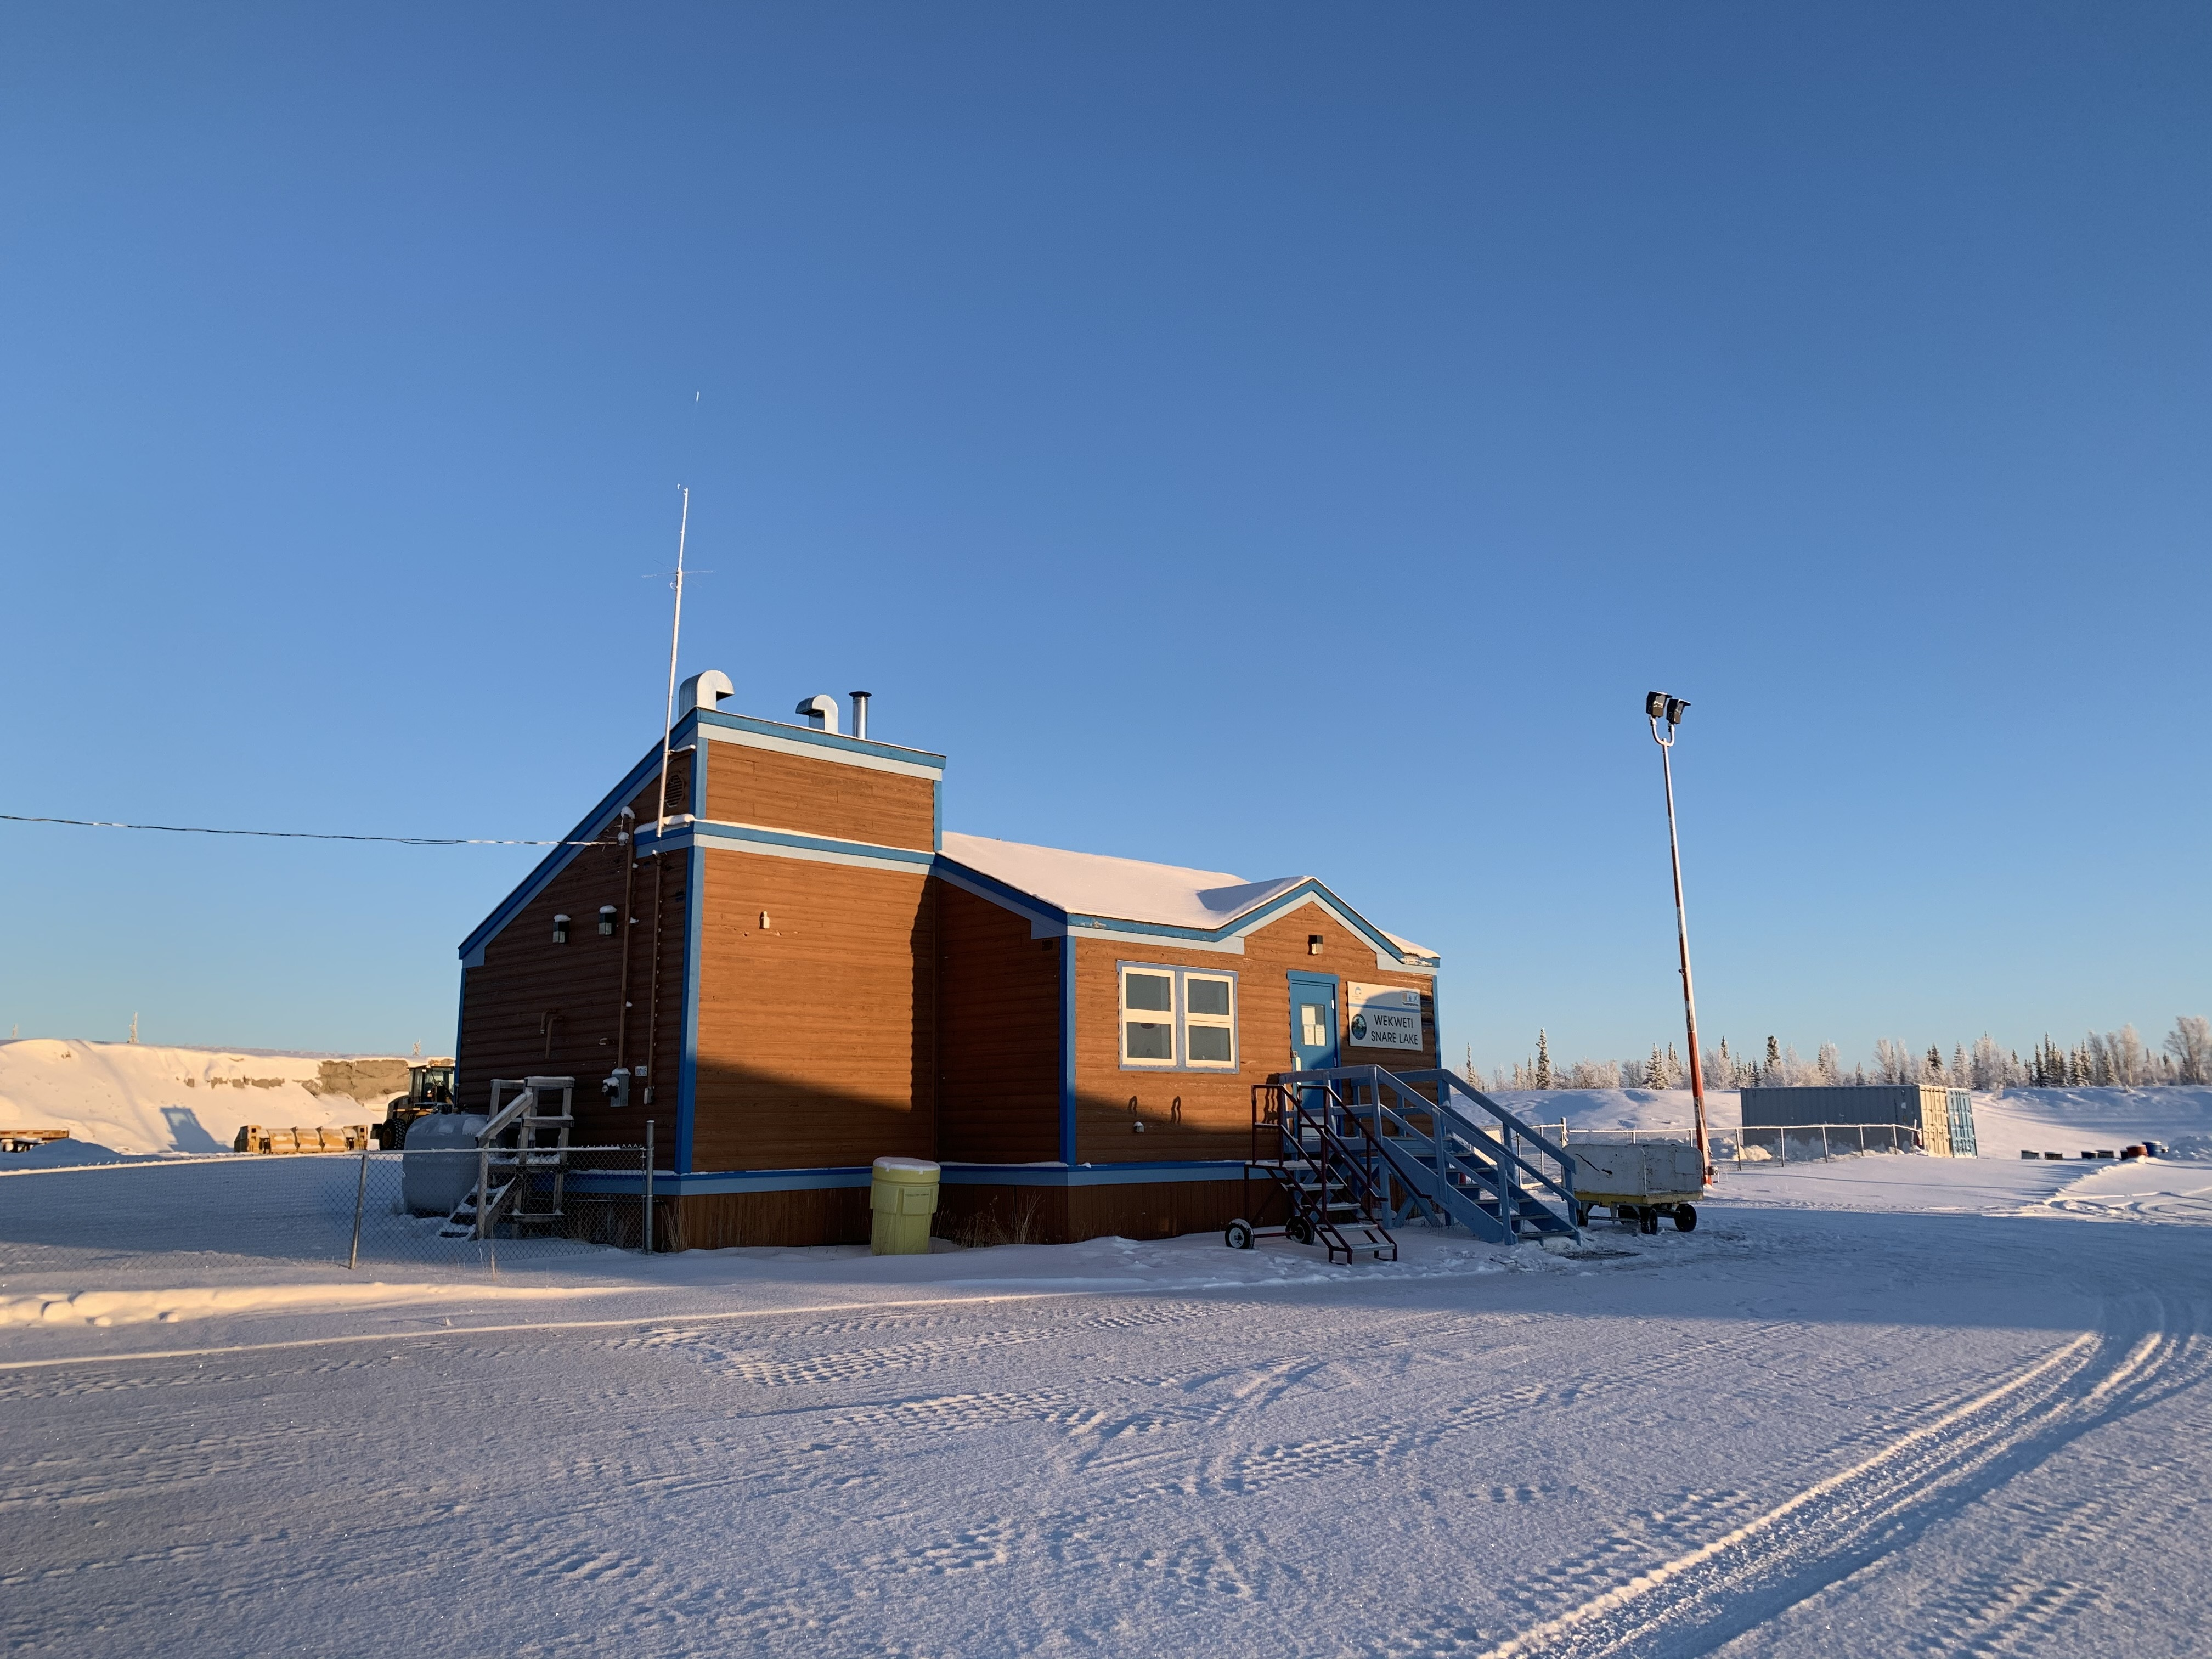 The airport building in Wekweètì, N.W.T., where Air Tindi flies six times a week bringing groceries, building supplies and other essentials. (Sidney Cohen/CBC)